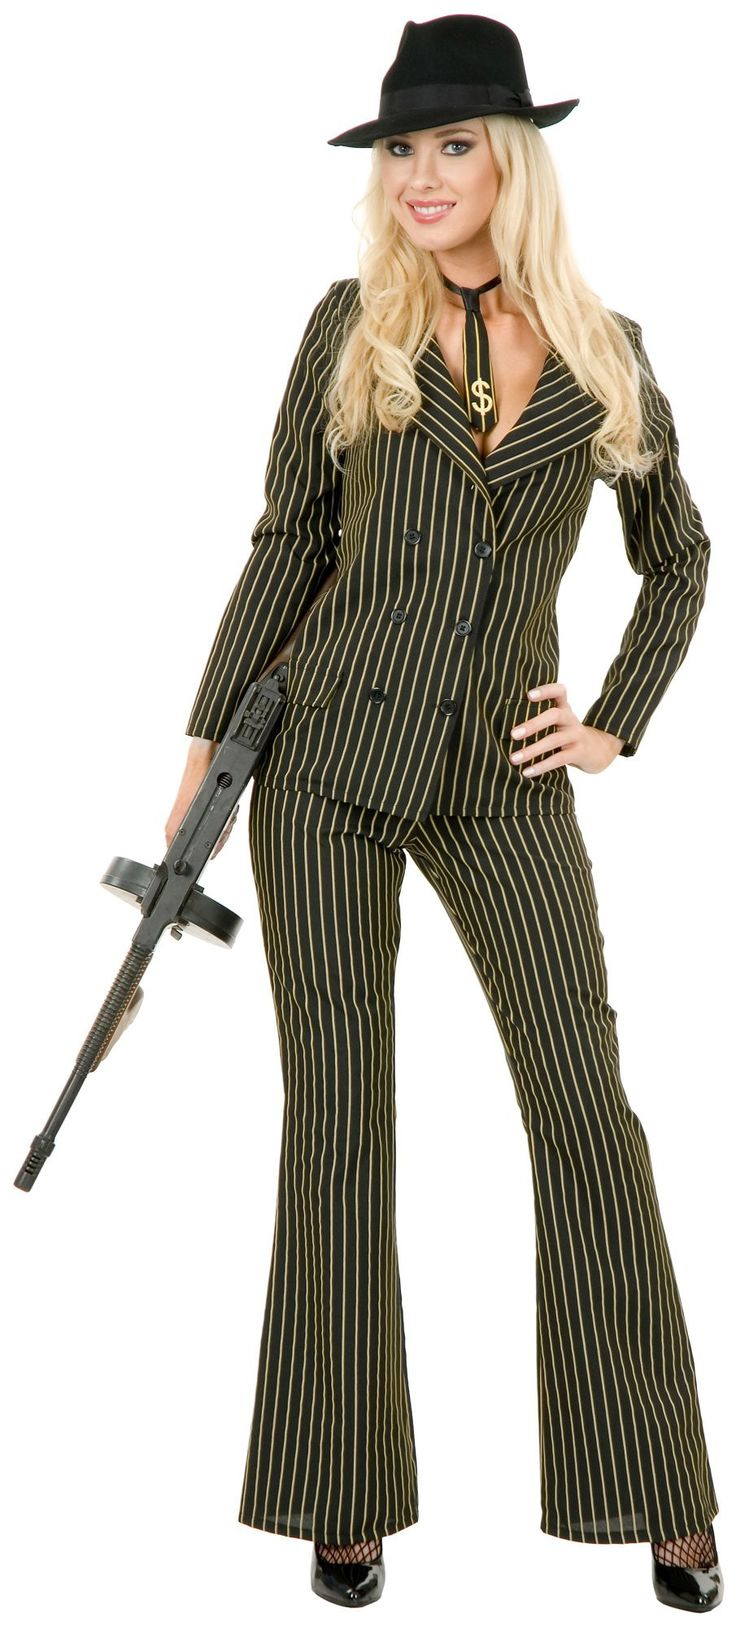 female gangster moll suit costume - Female Gangster Halloween Costumes